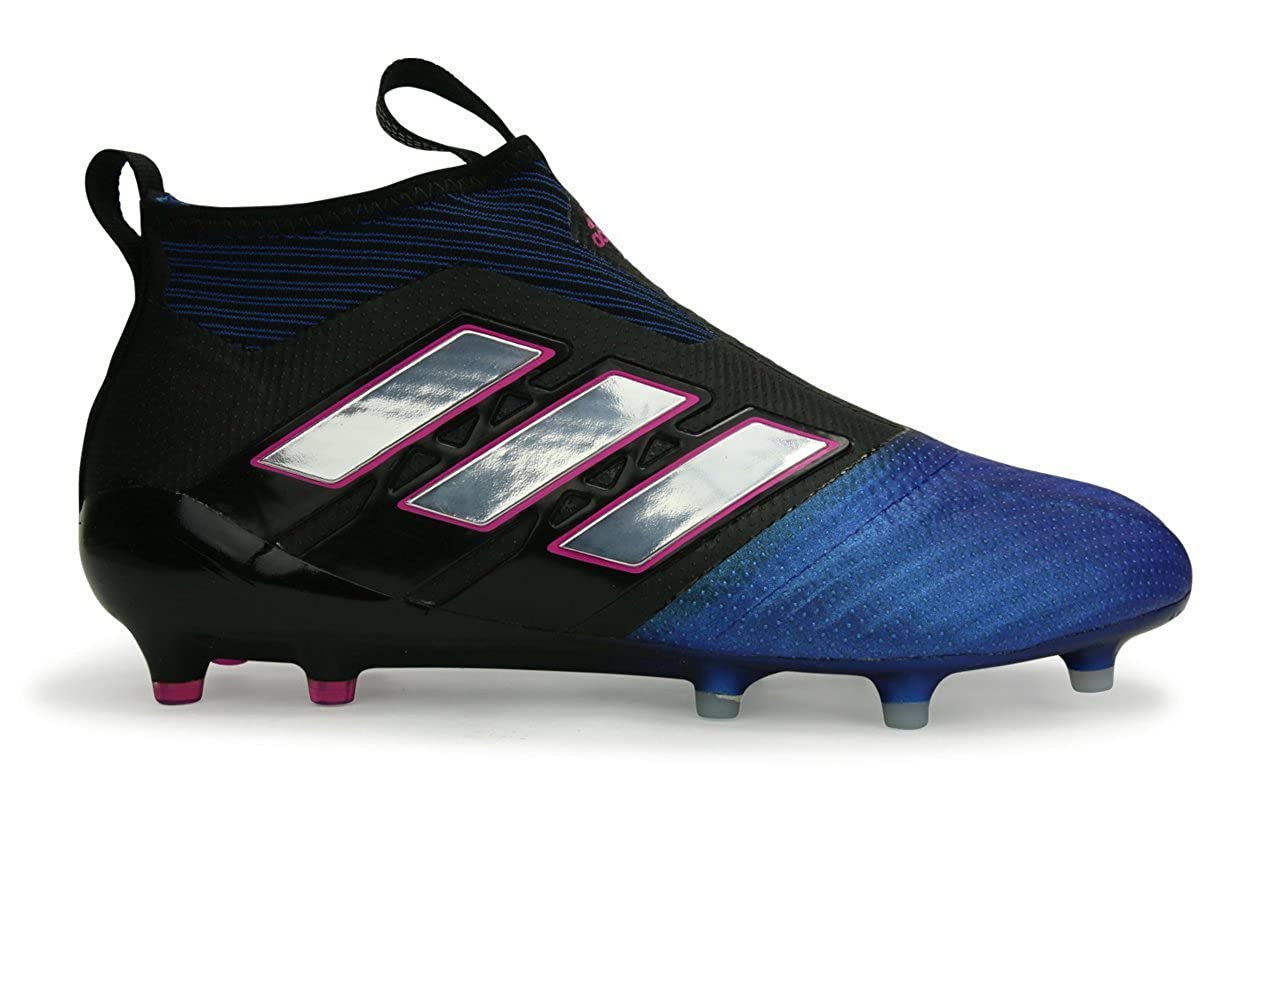 official photos bab65 30036 Amazon.com  adidas Mens Ace 17+ Purecontrol Fg Core BlackWhiteBlue  Soccer Shoes - 8.5A  Soccer